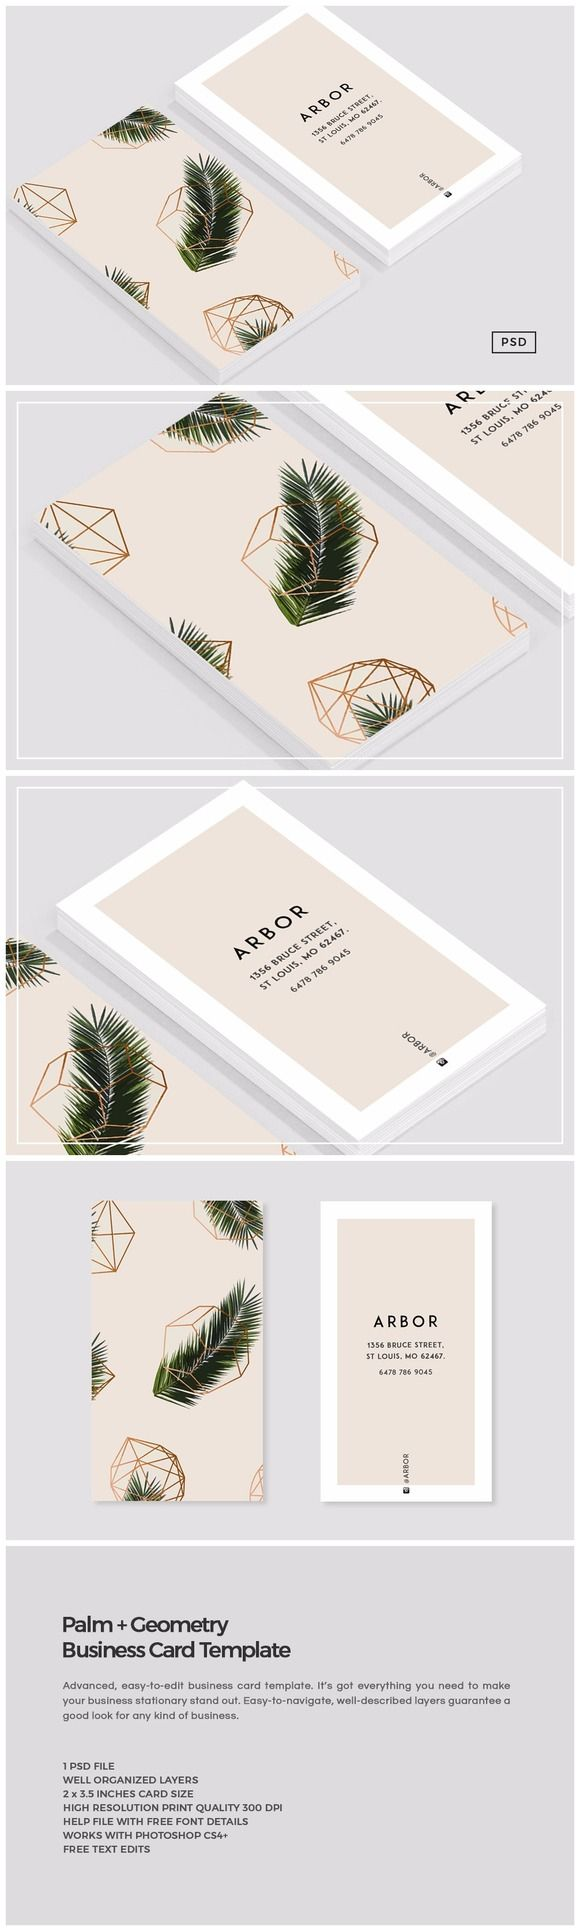 Palm Geometry Business Card By The Design Label On Creativemarket